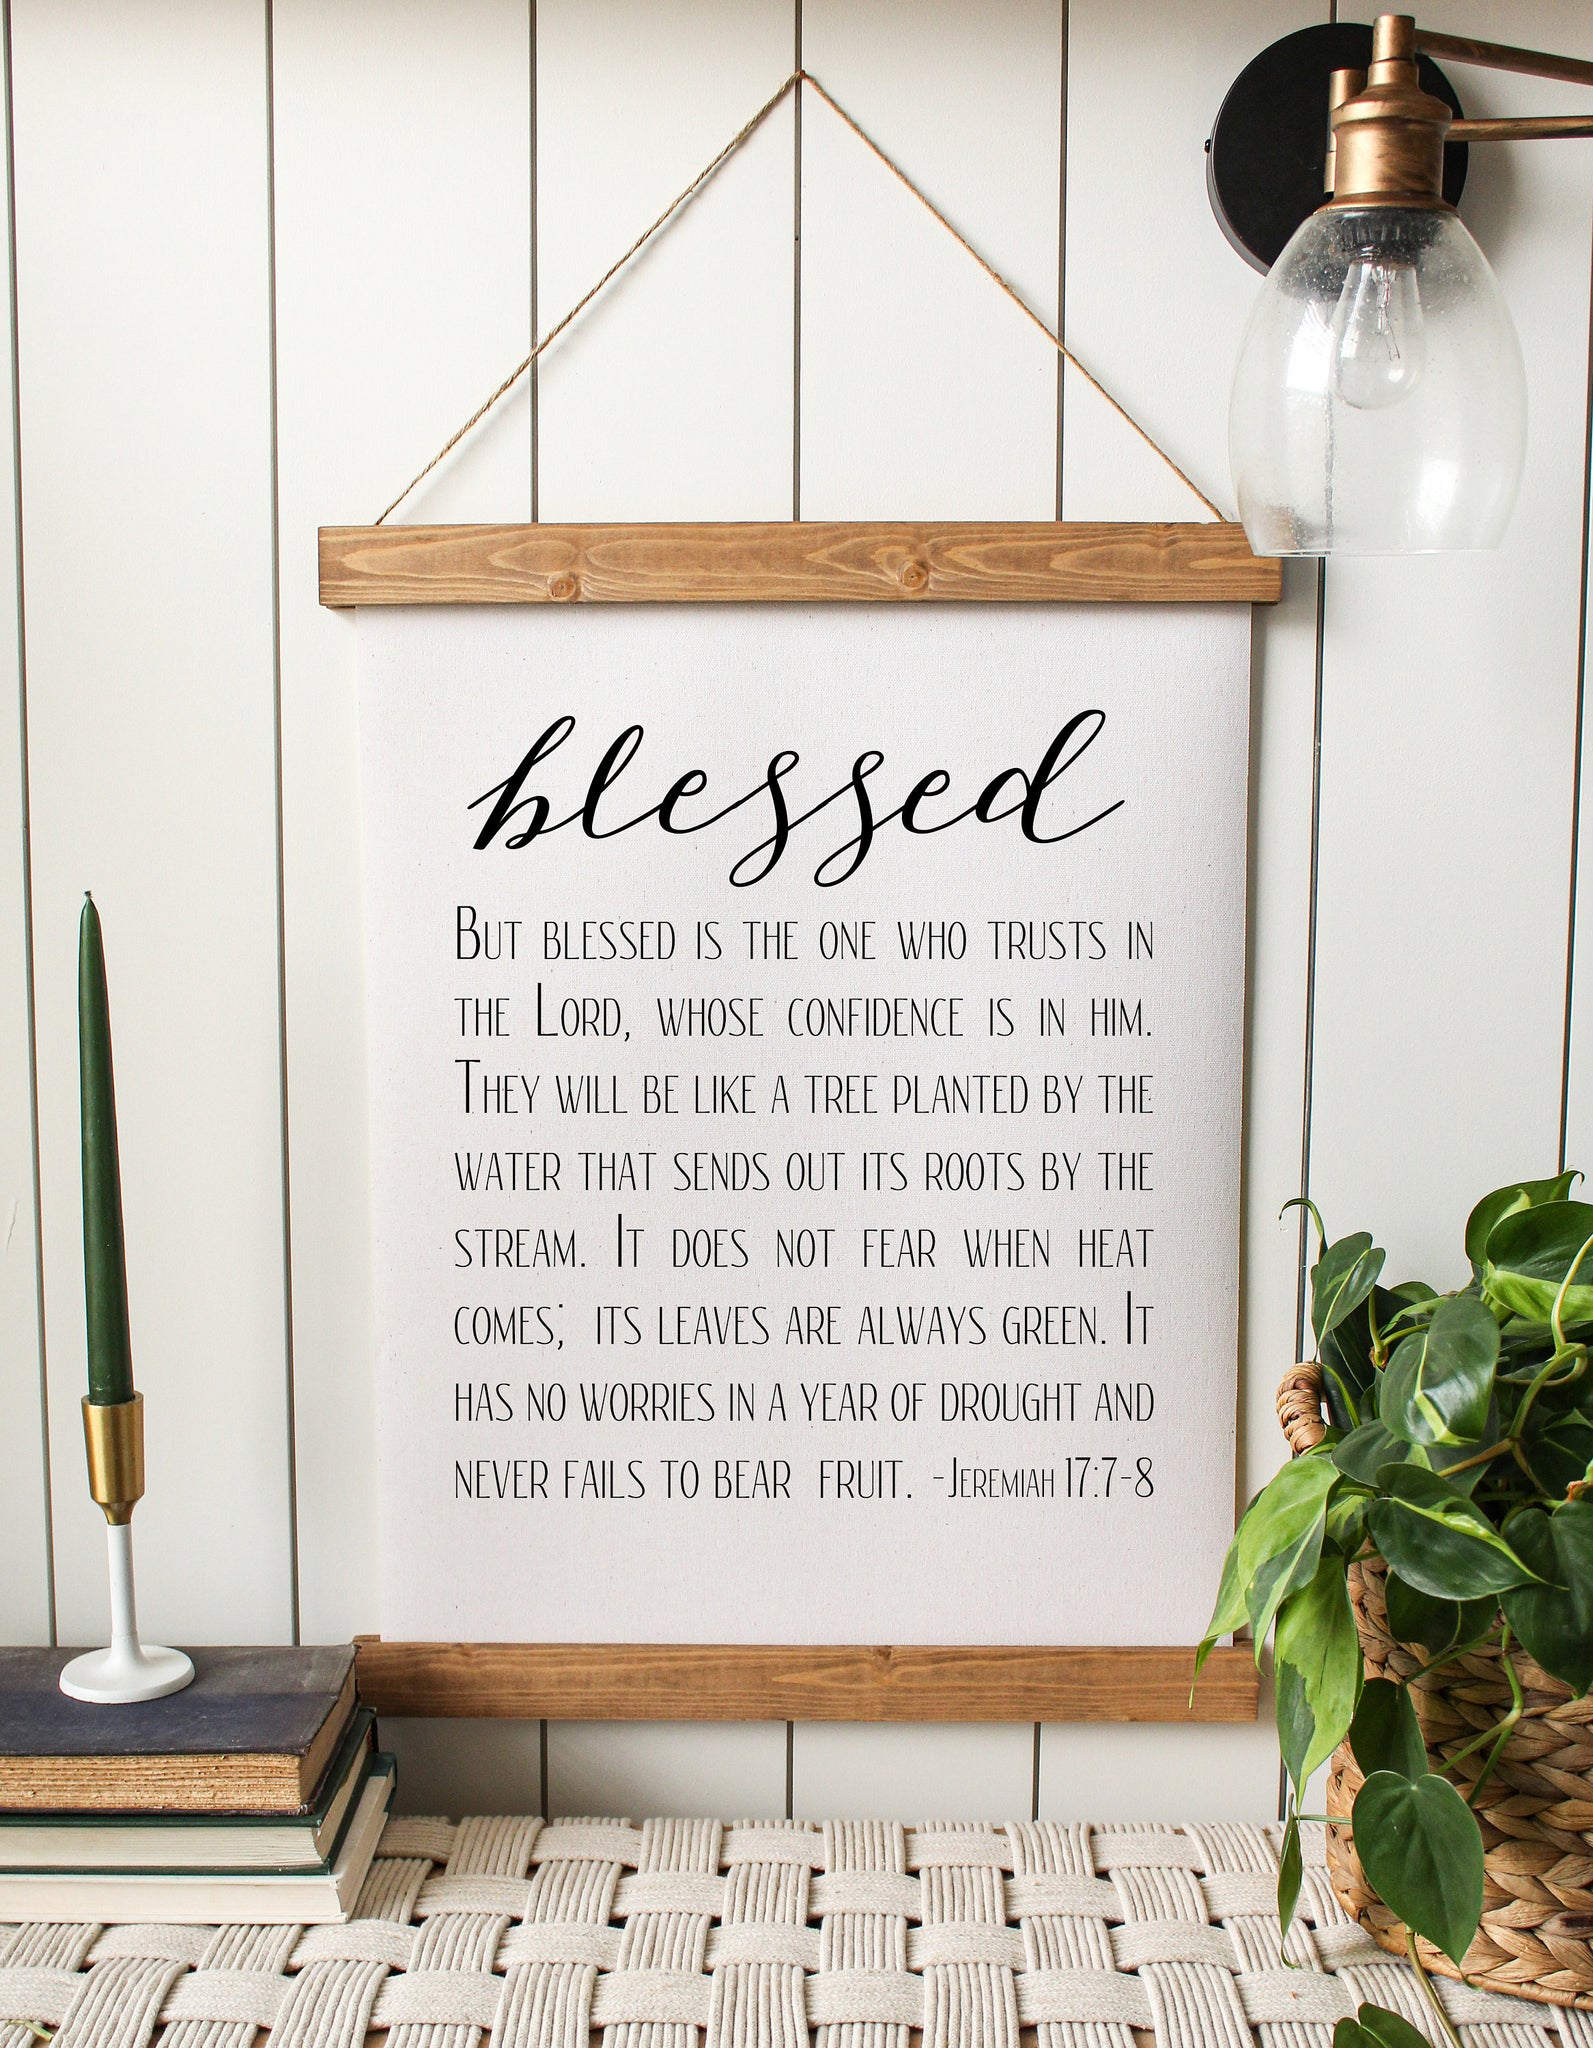 blessed/jeremiah 17:7-8/bible verse/home decor/canvas wall art